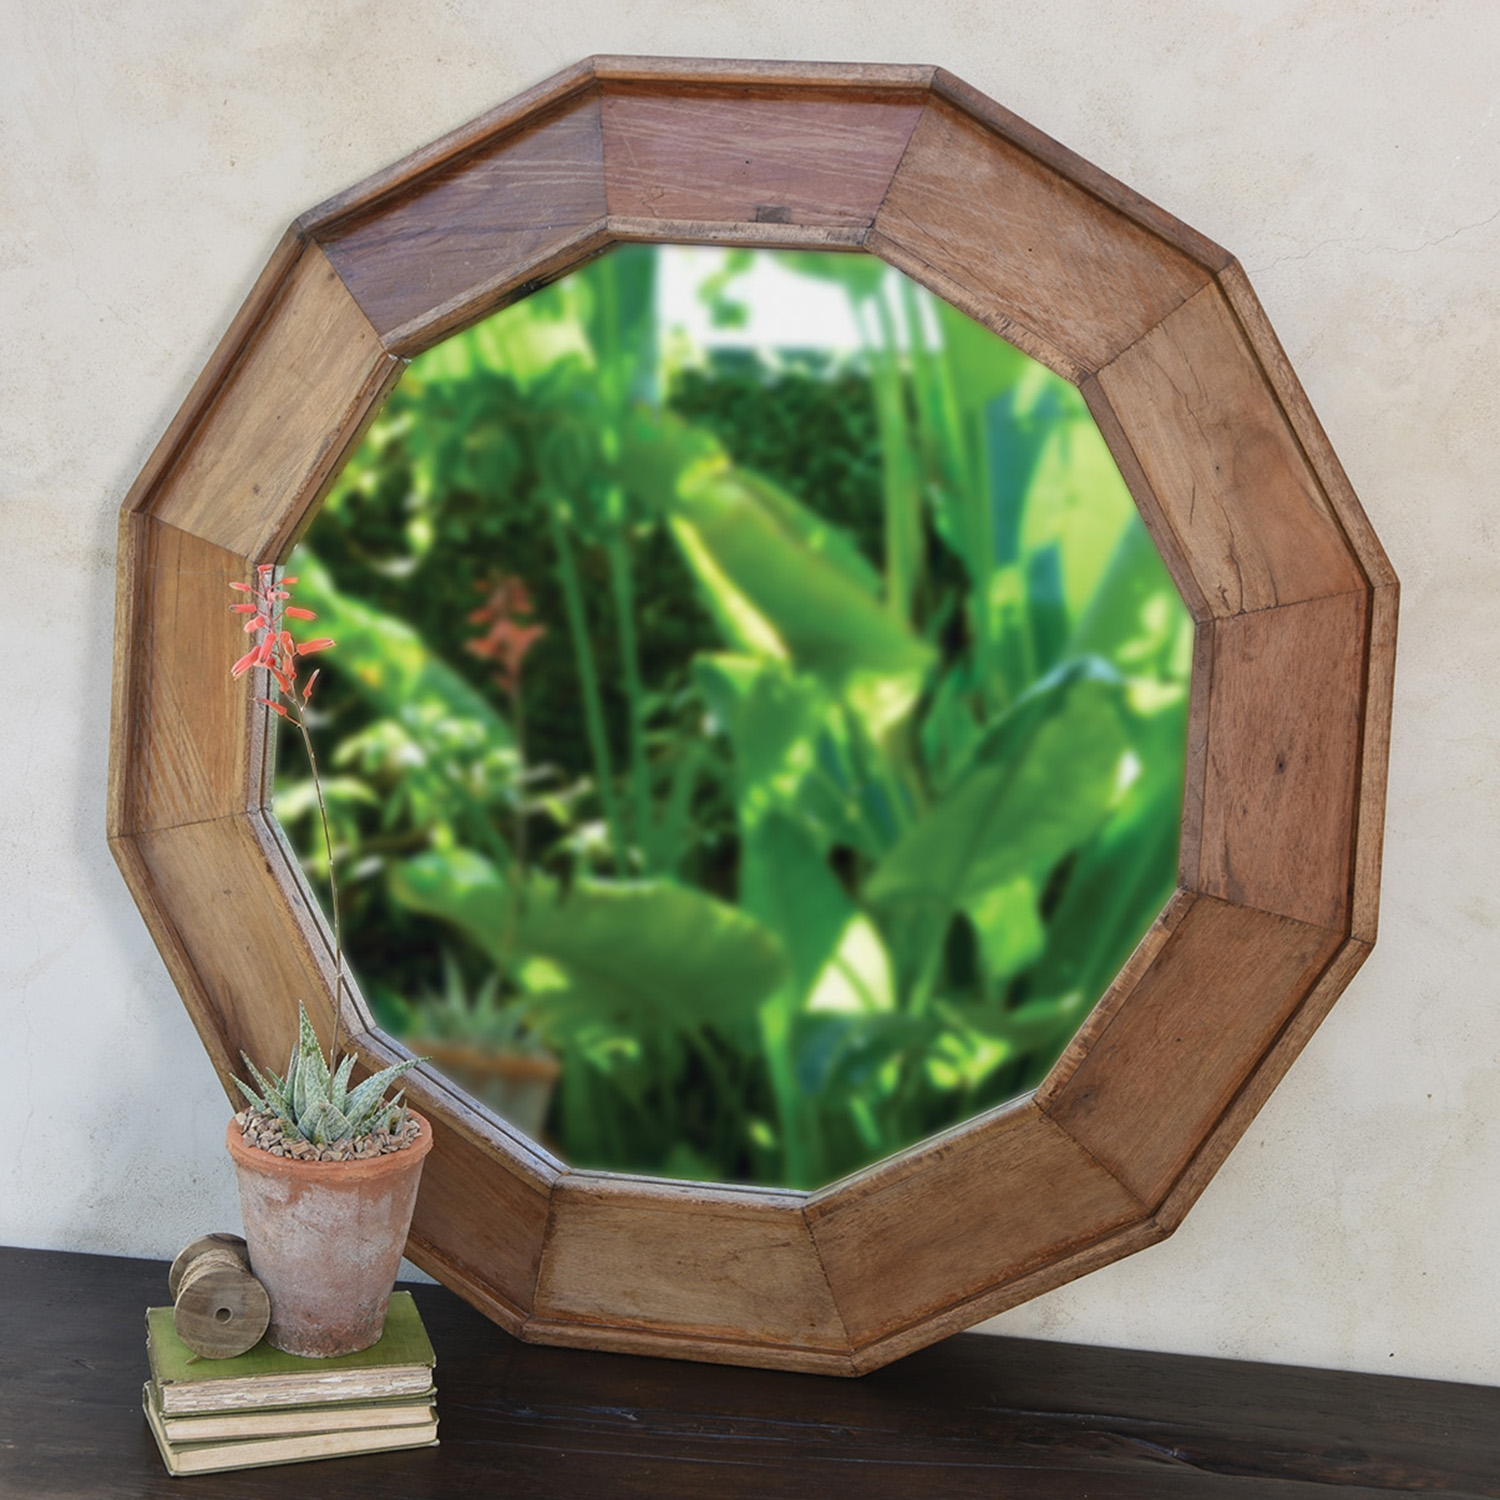 Euclid Wood Mirror